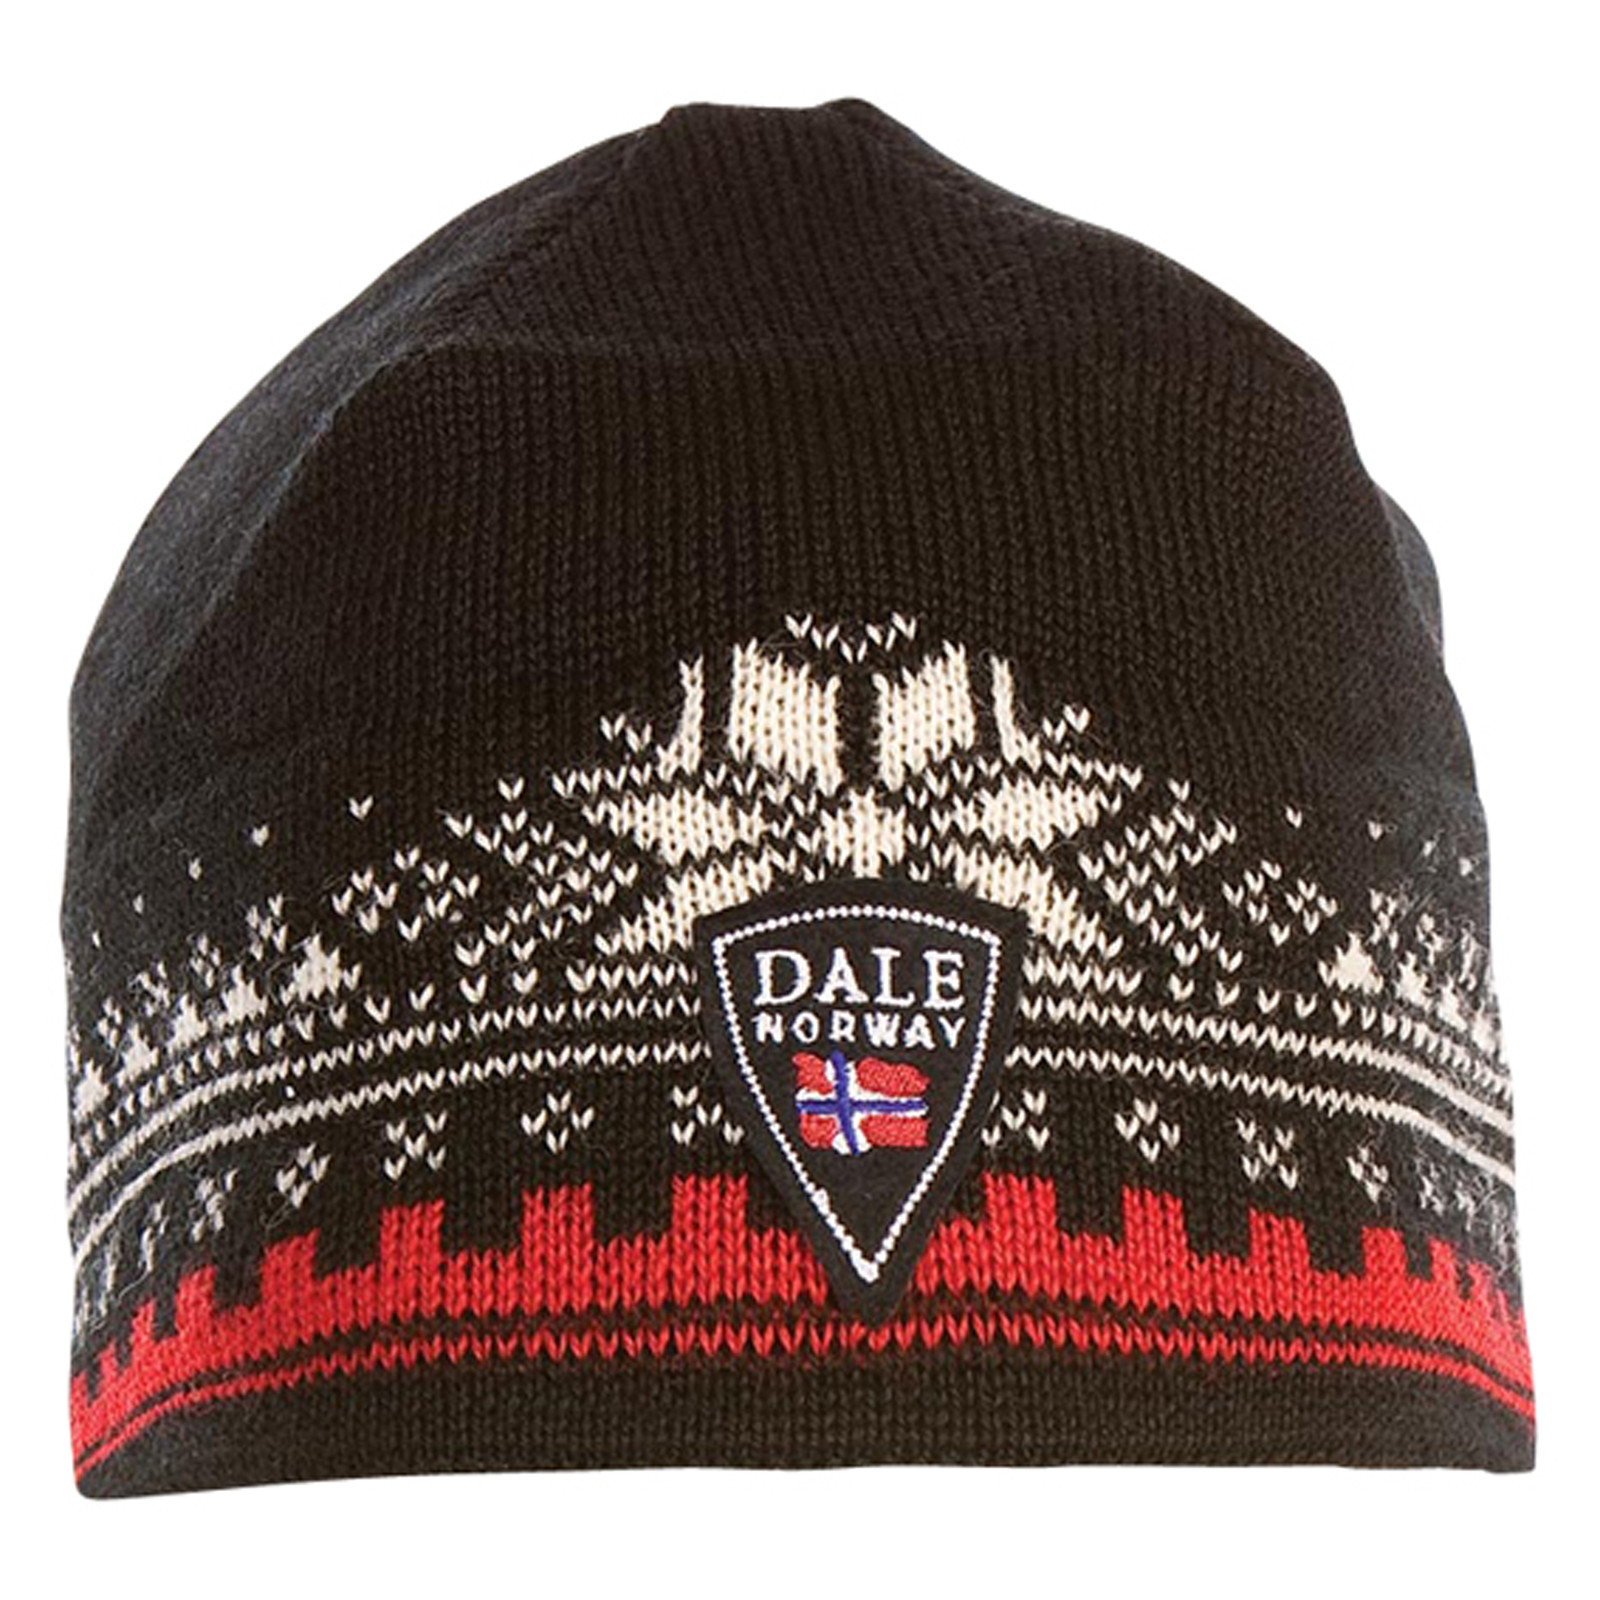 Front of Dale of Norway 125th Anniversary Unisex Hat in Black/Raspberry/Off White, 47931-F